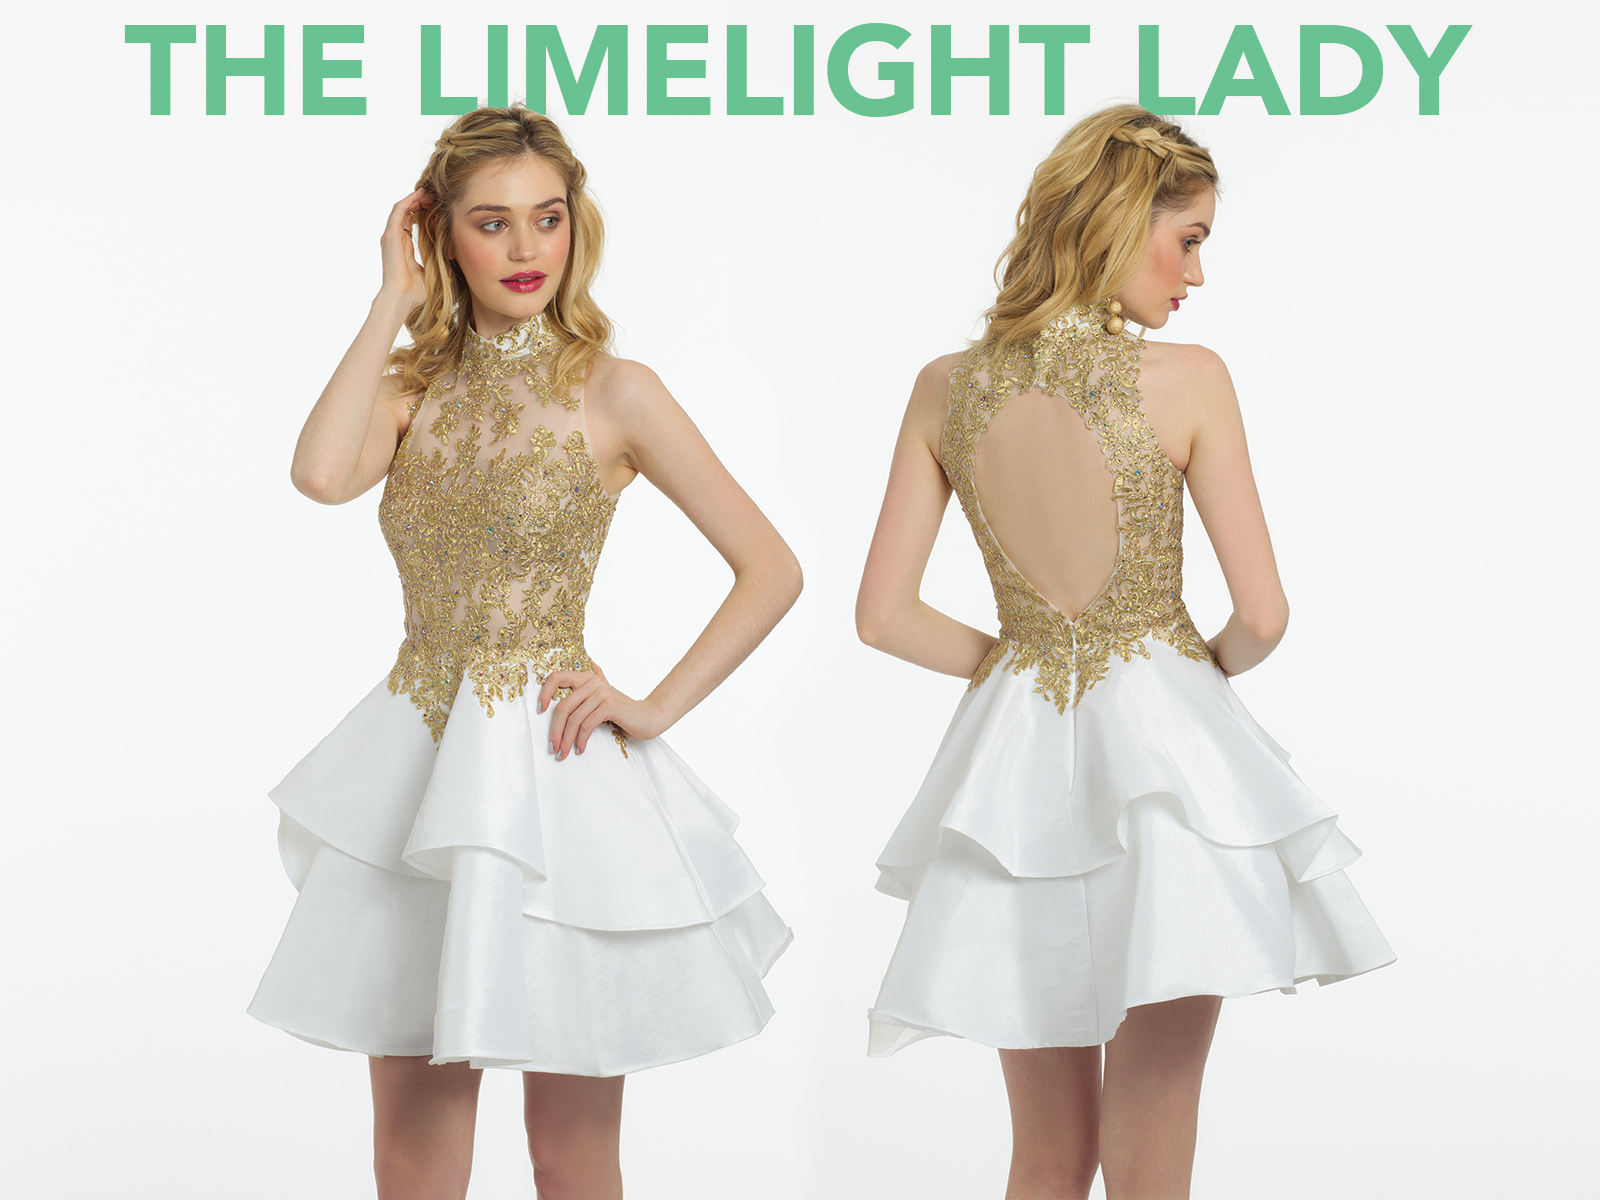 The Limelight Lady